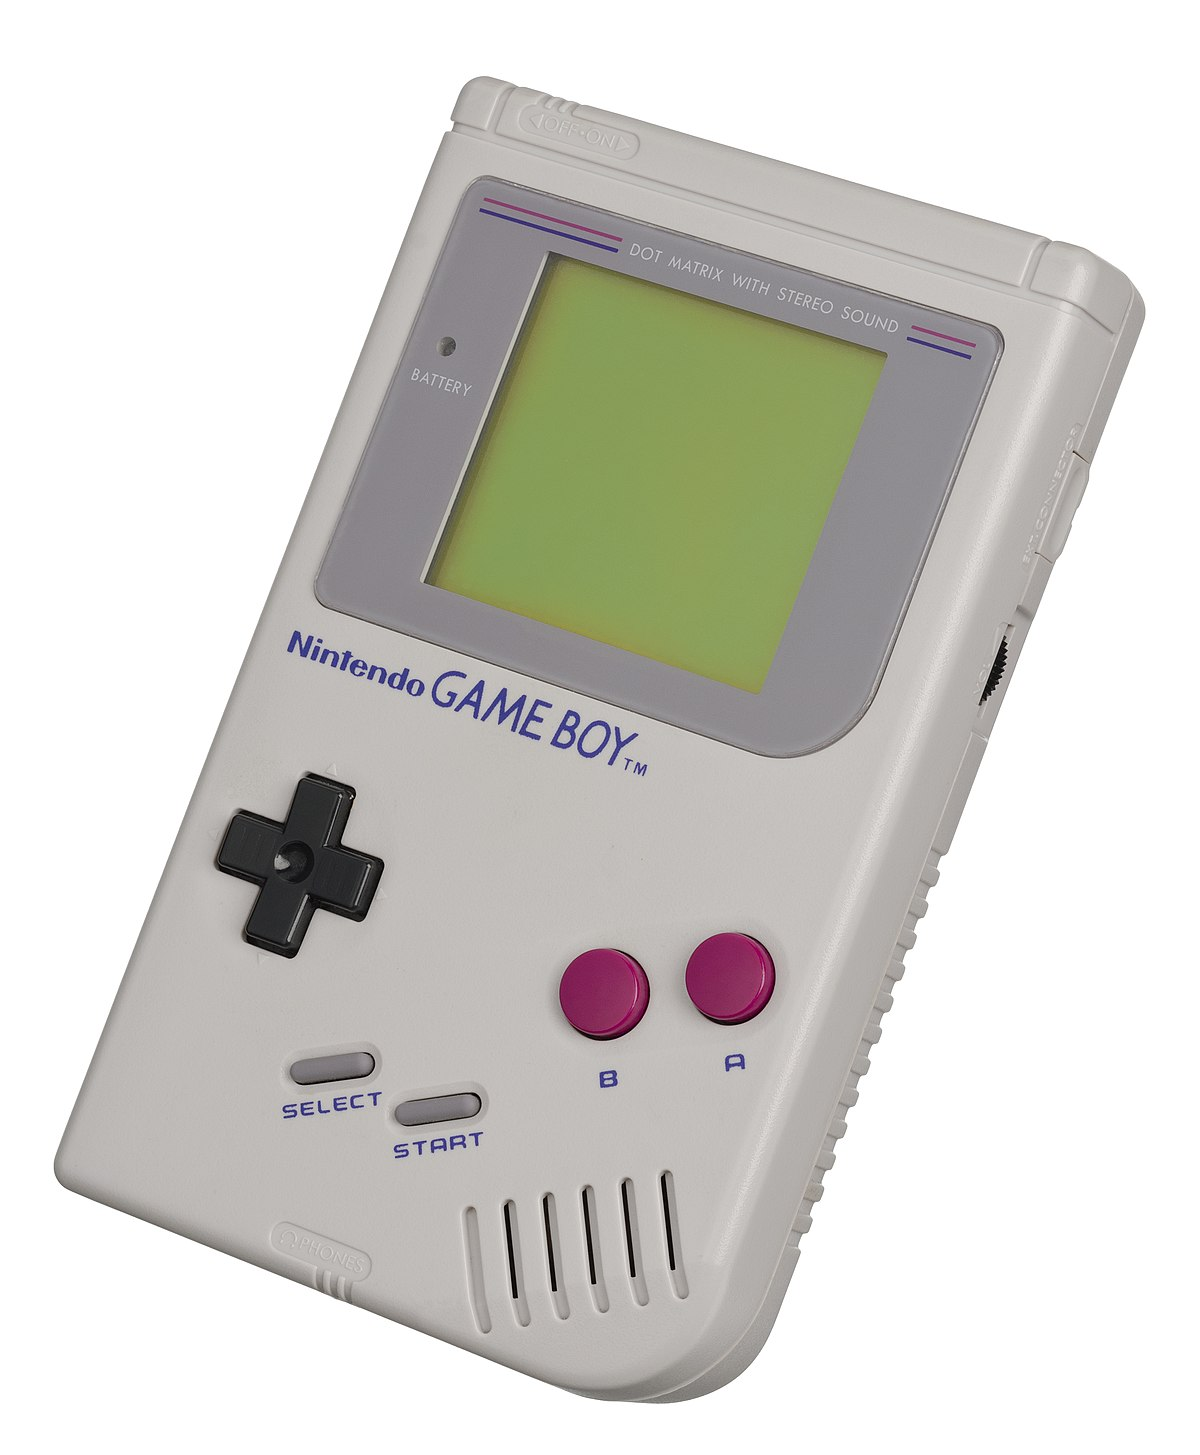 Image result for game boy